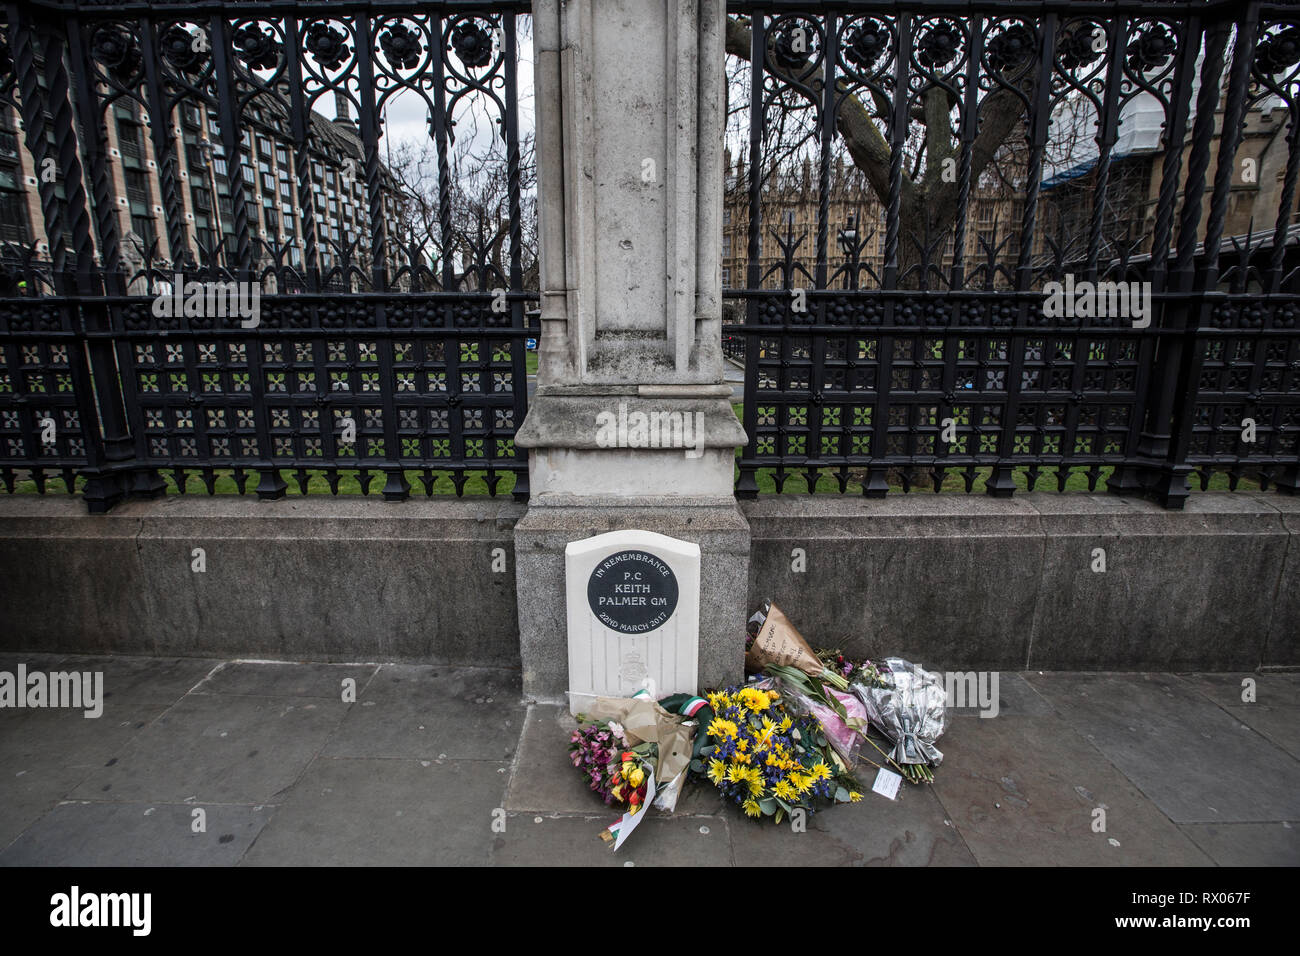 National memorial outside Palace of Westminster in tribute to PC Keith Palmer who was stabbed by Khalid Masood on duty on the forecourt of the Palace. - Stock Image